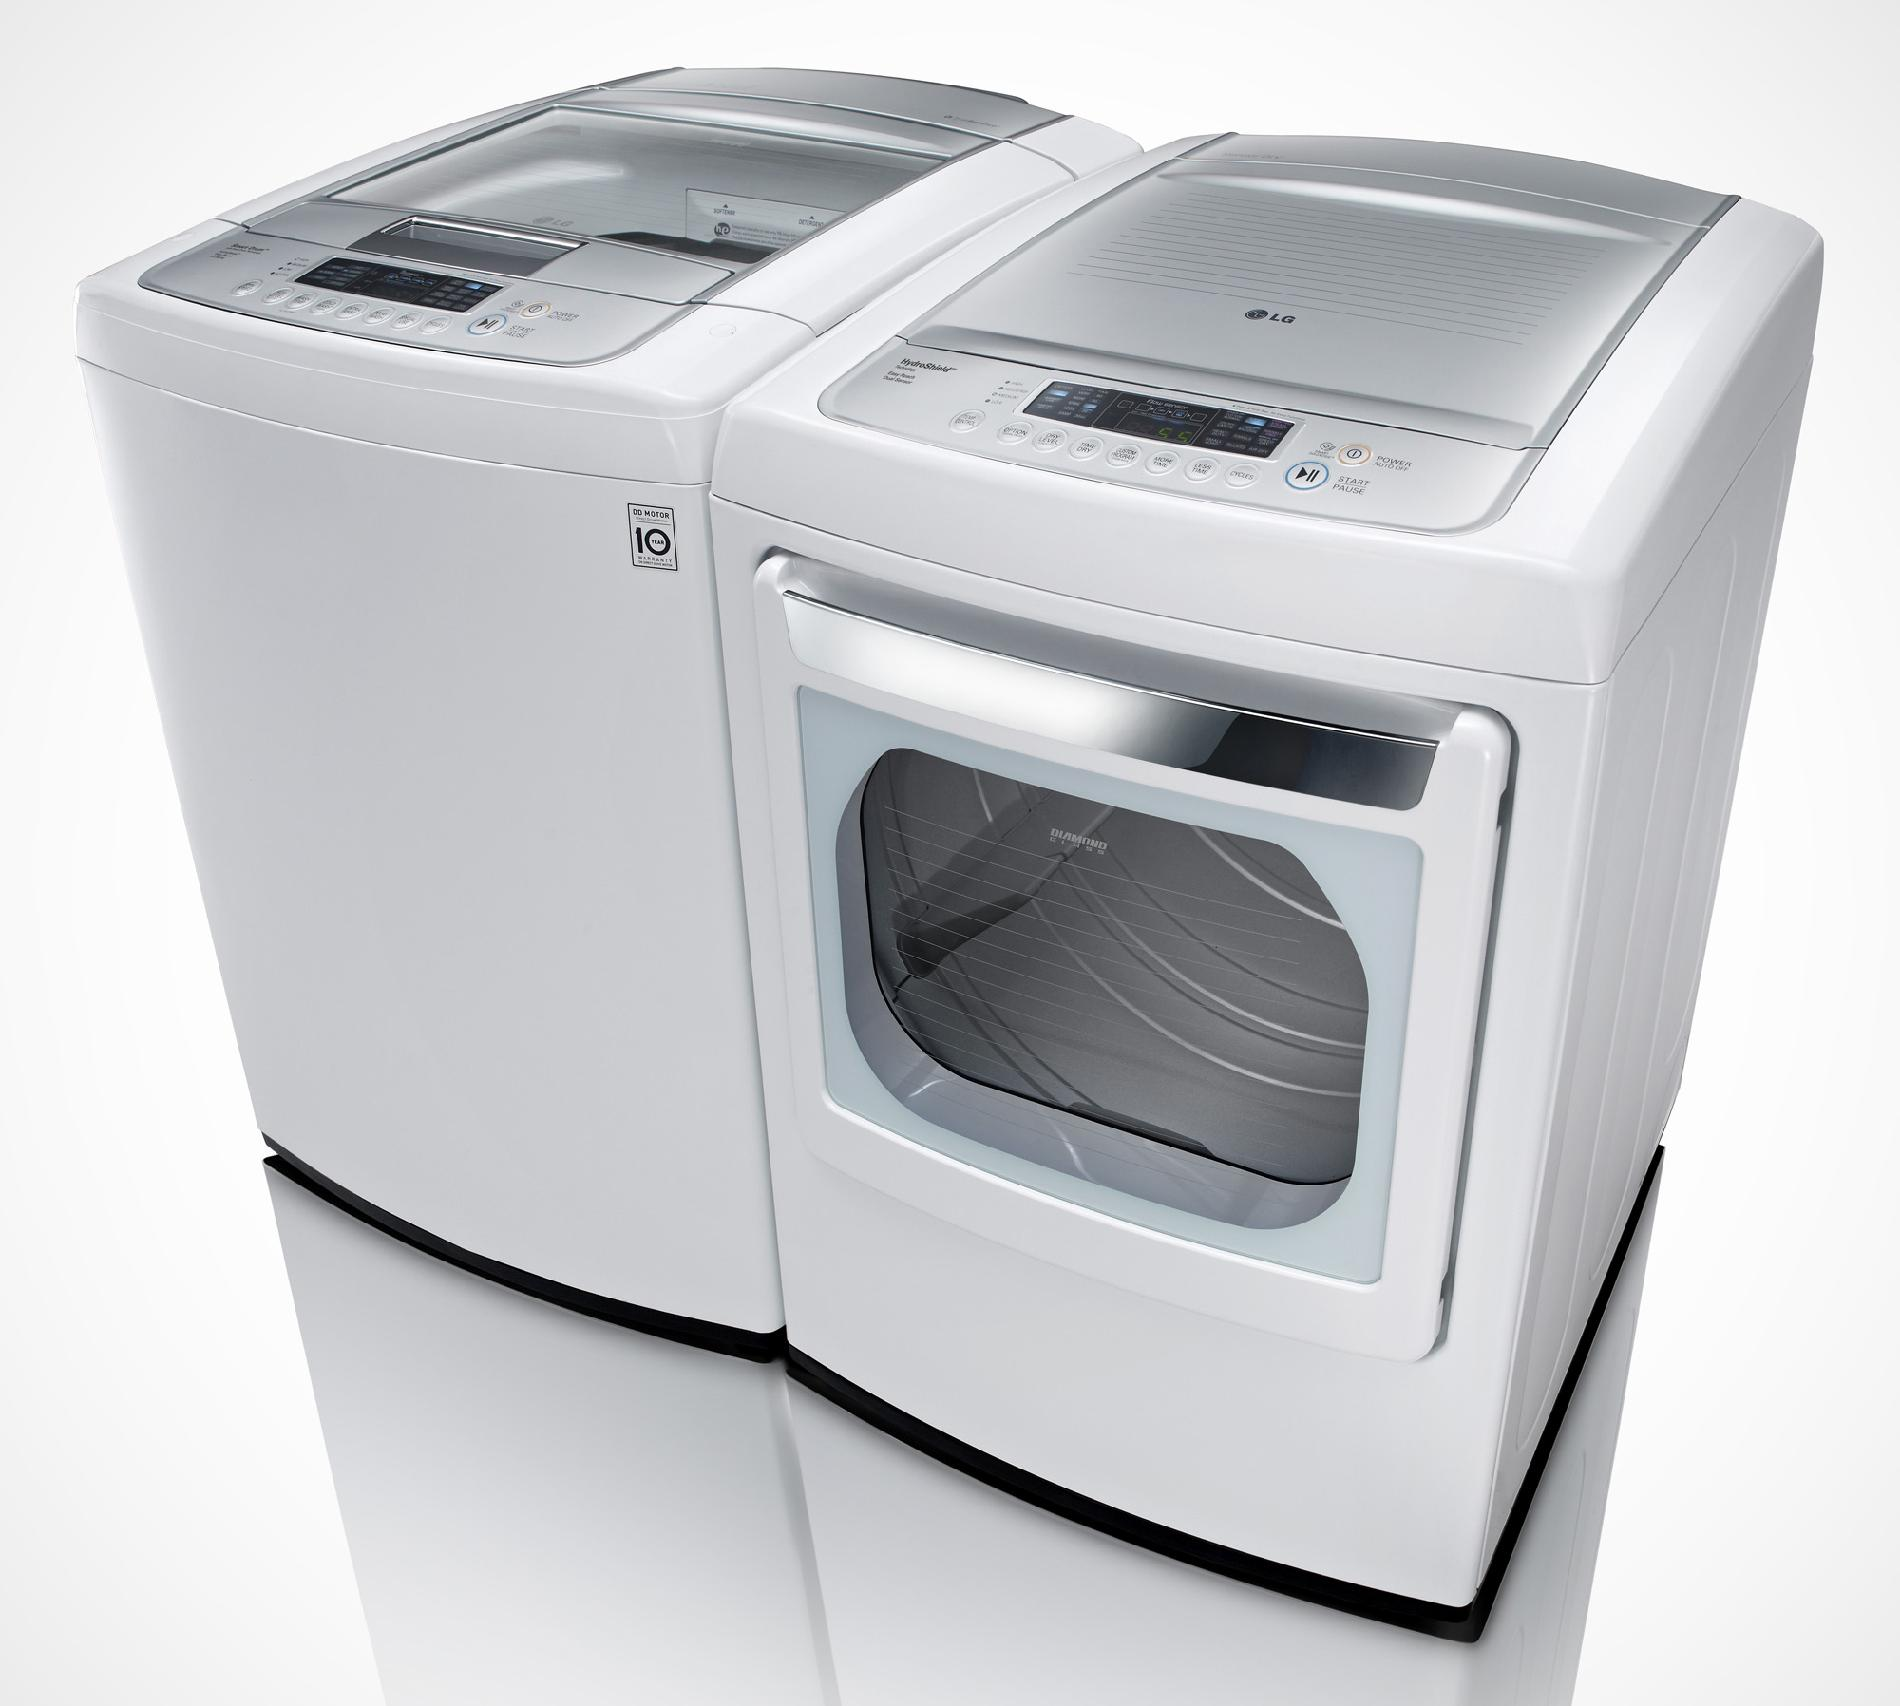 LG 7.3 cu. ft. Electric Dryer w/ SteamFresh™ - White